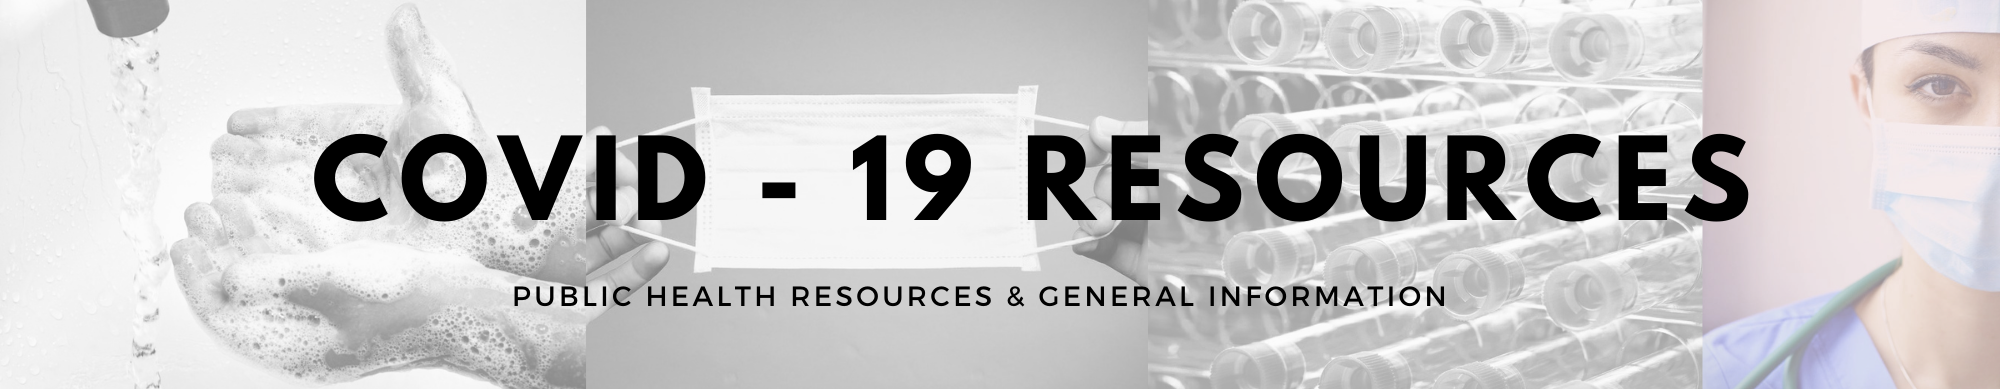 COVID 19 Resources banner cover art